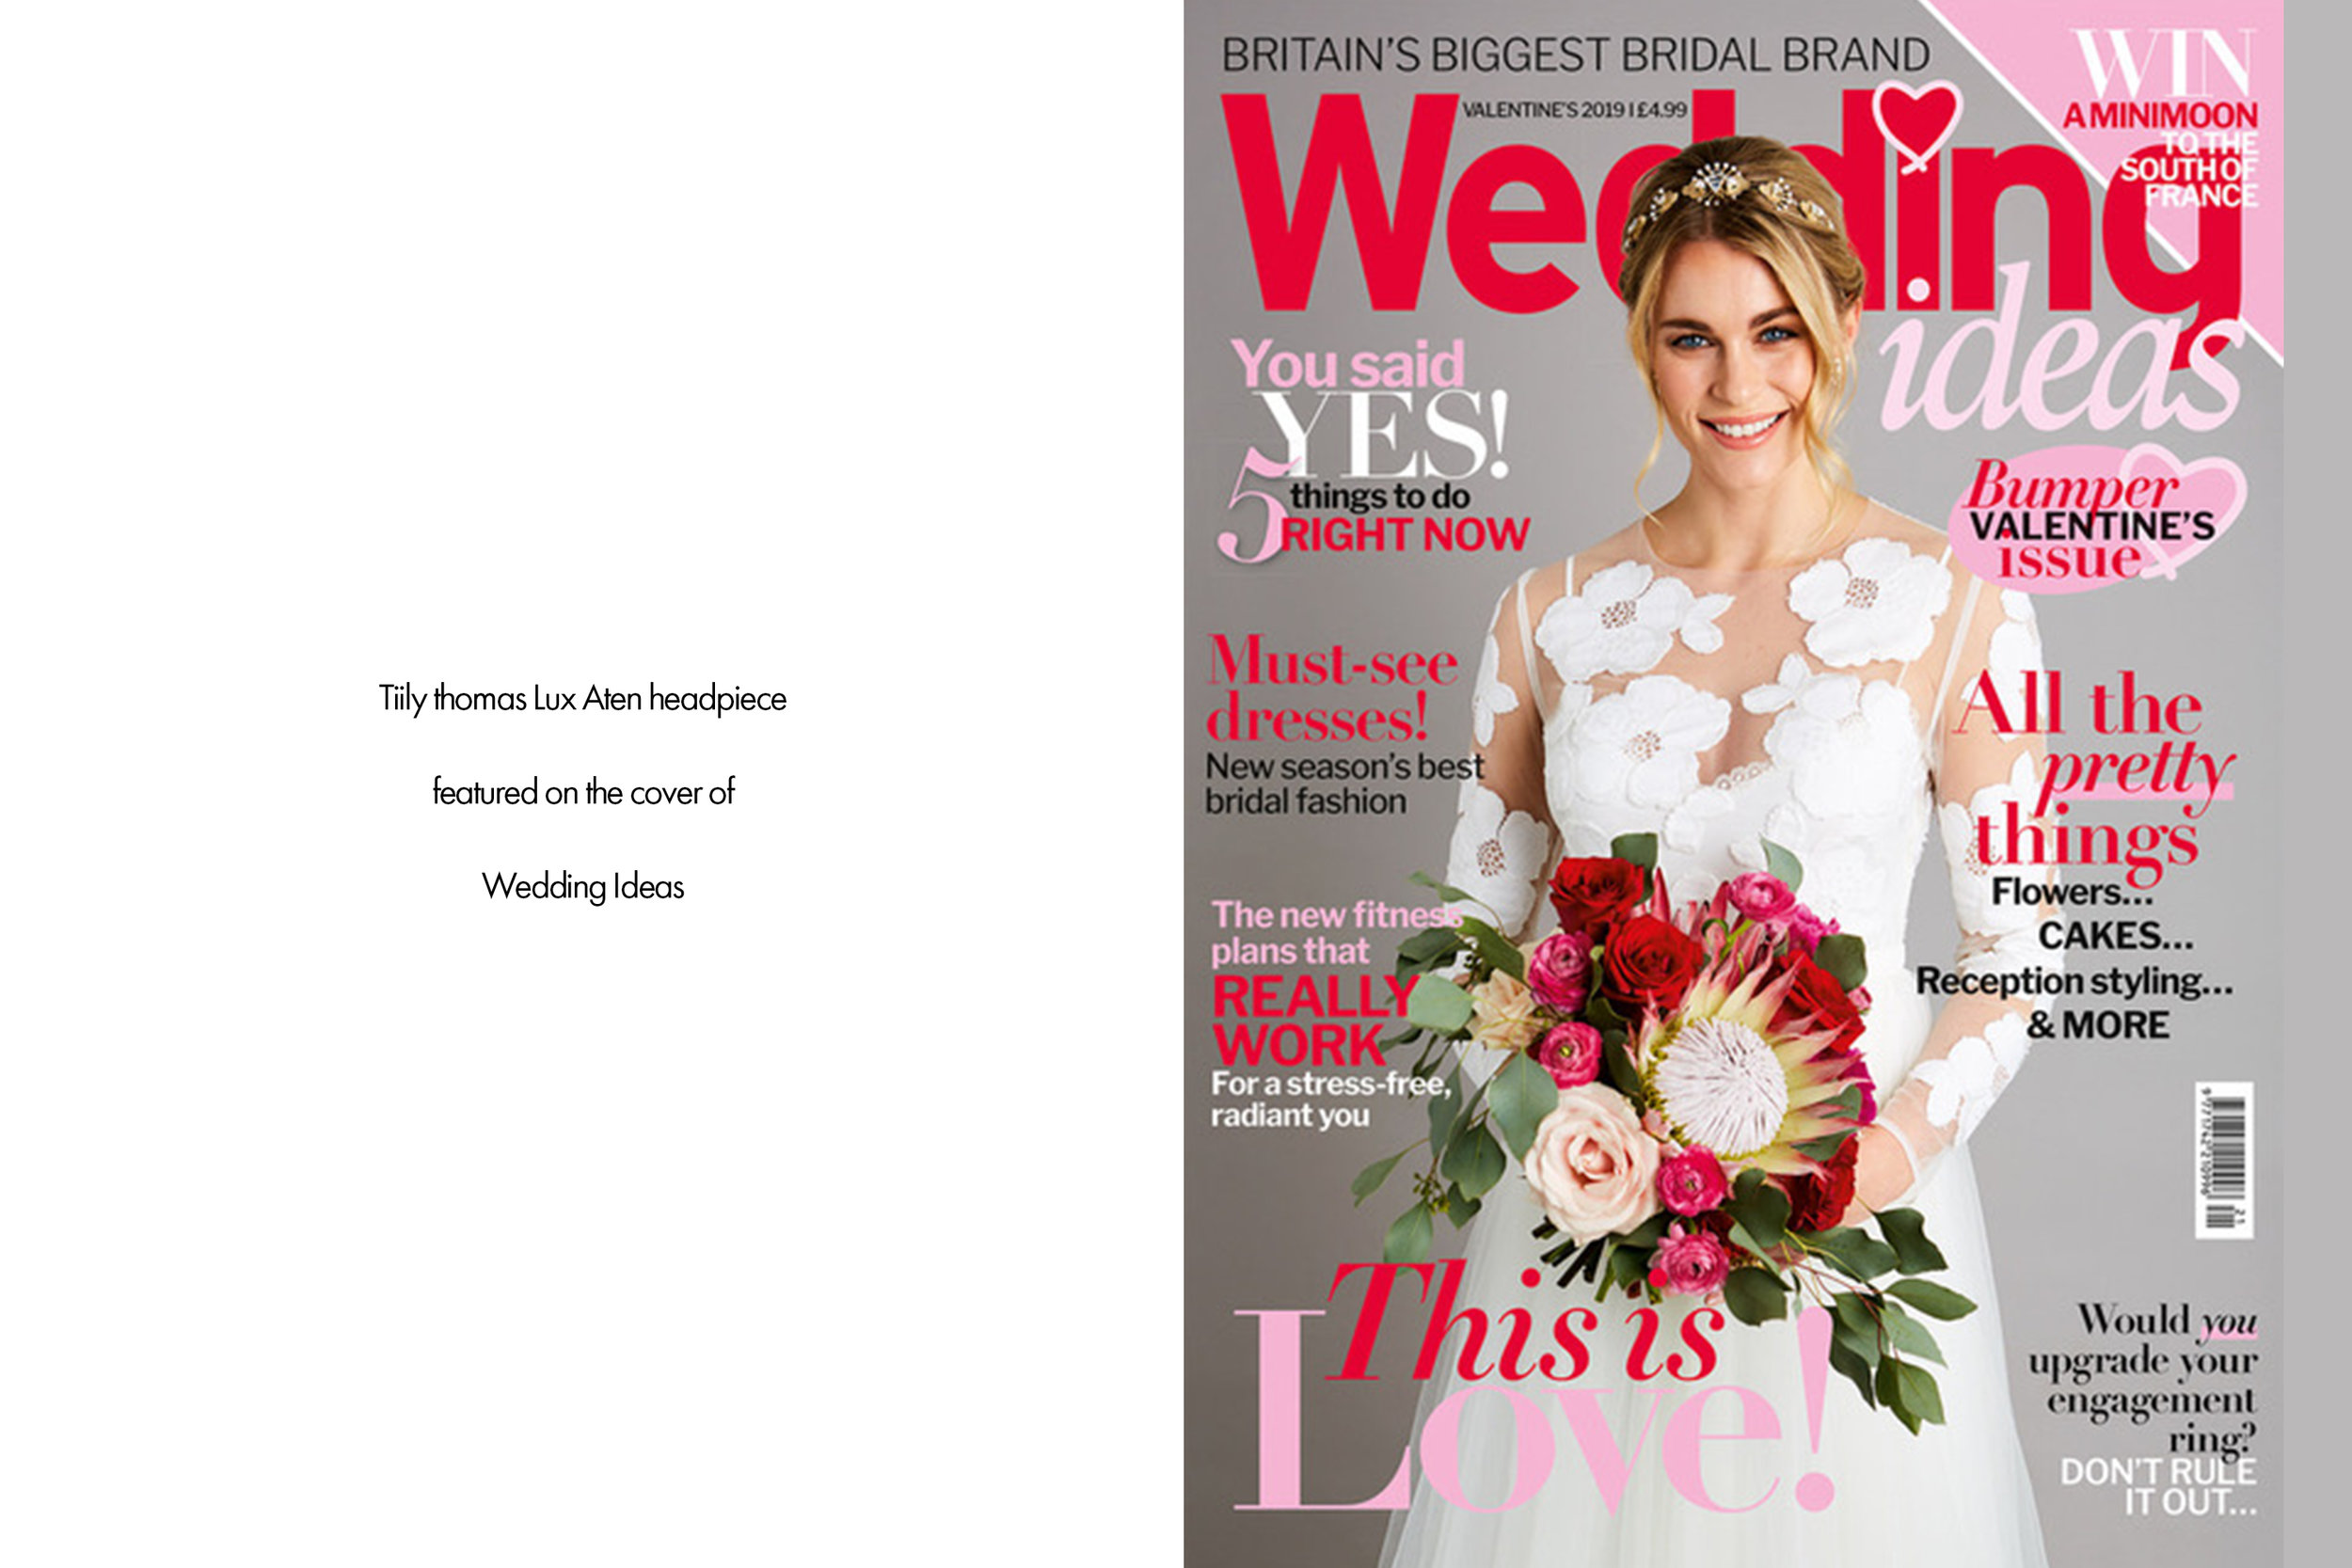 Tilly Thomas Lux Aten headpiece featured on the cover of Wedding Ideas Magazine